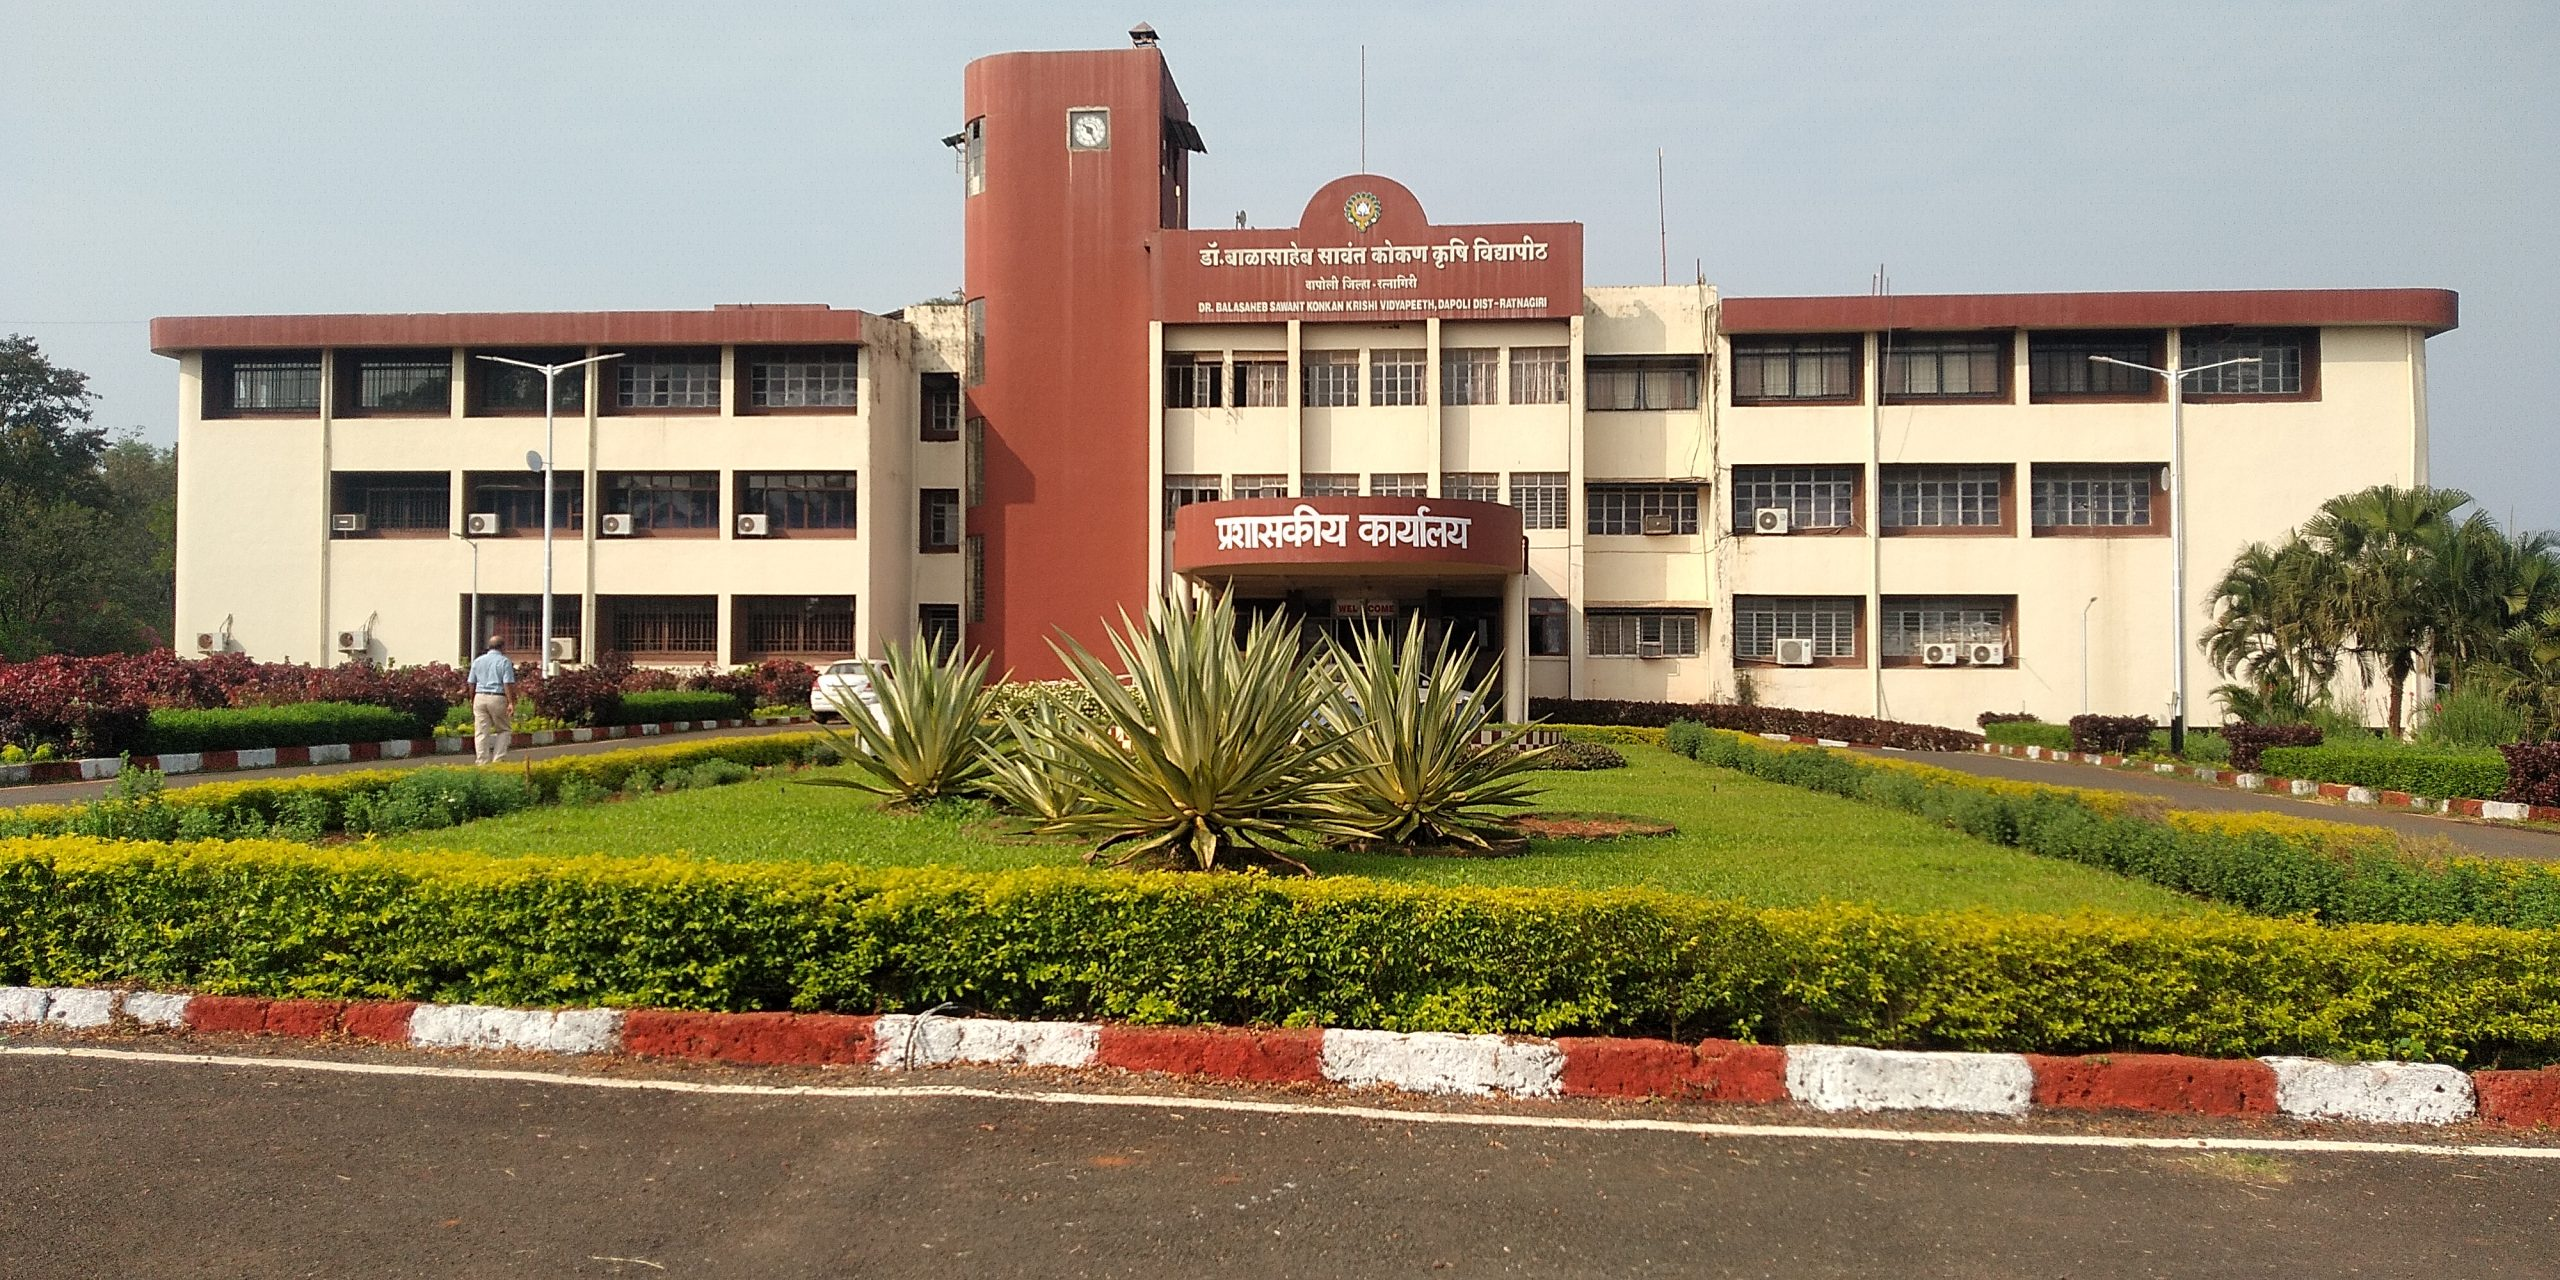 Building of Agriculture college in Dapoli